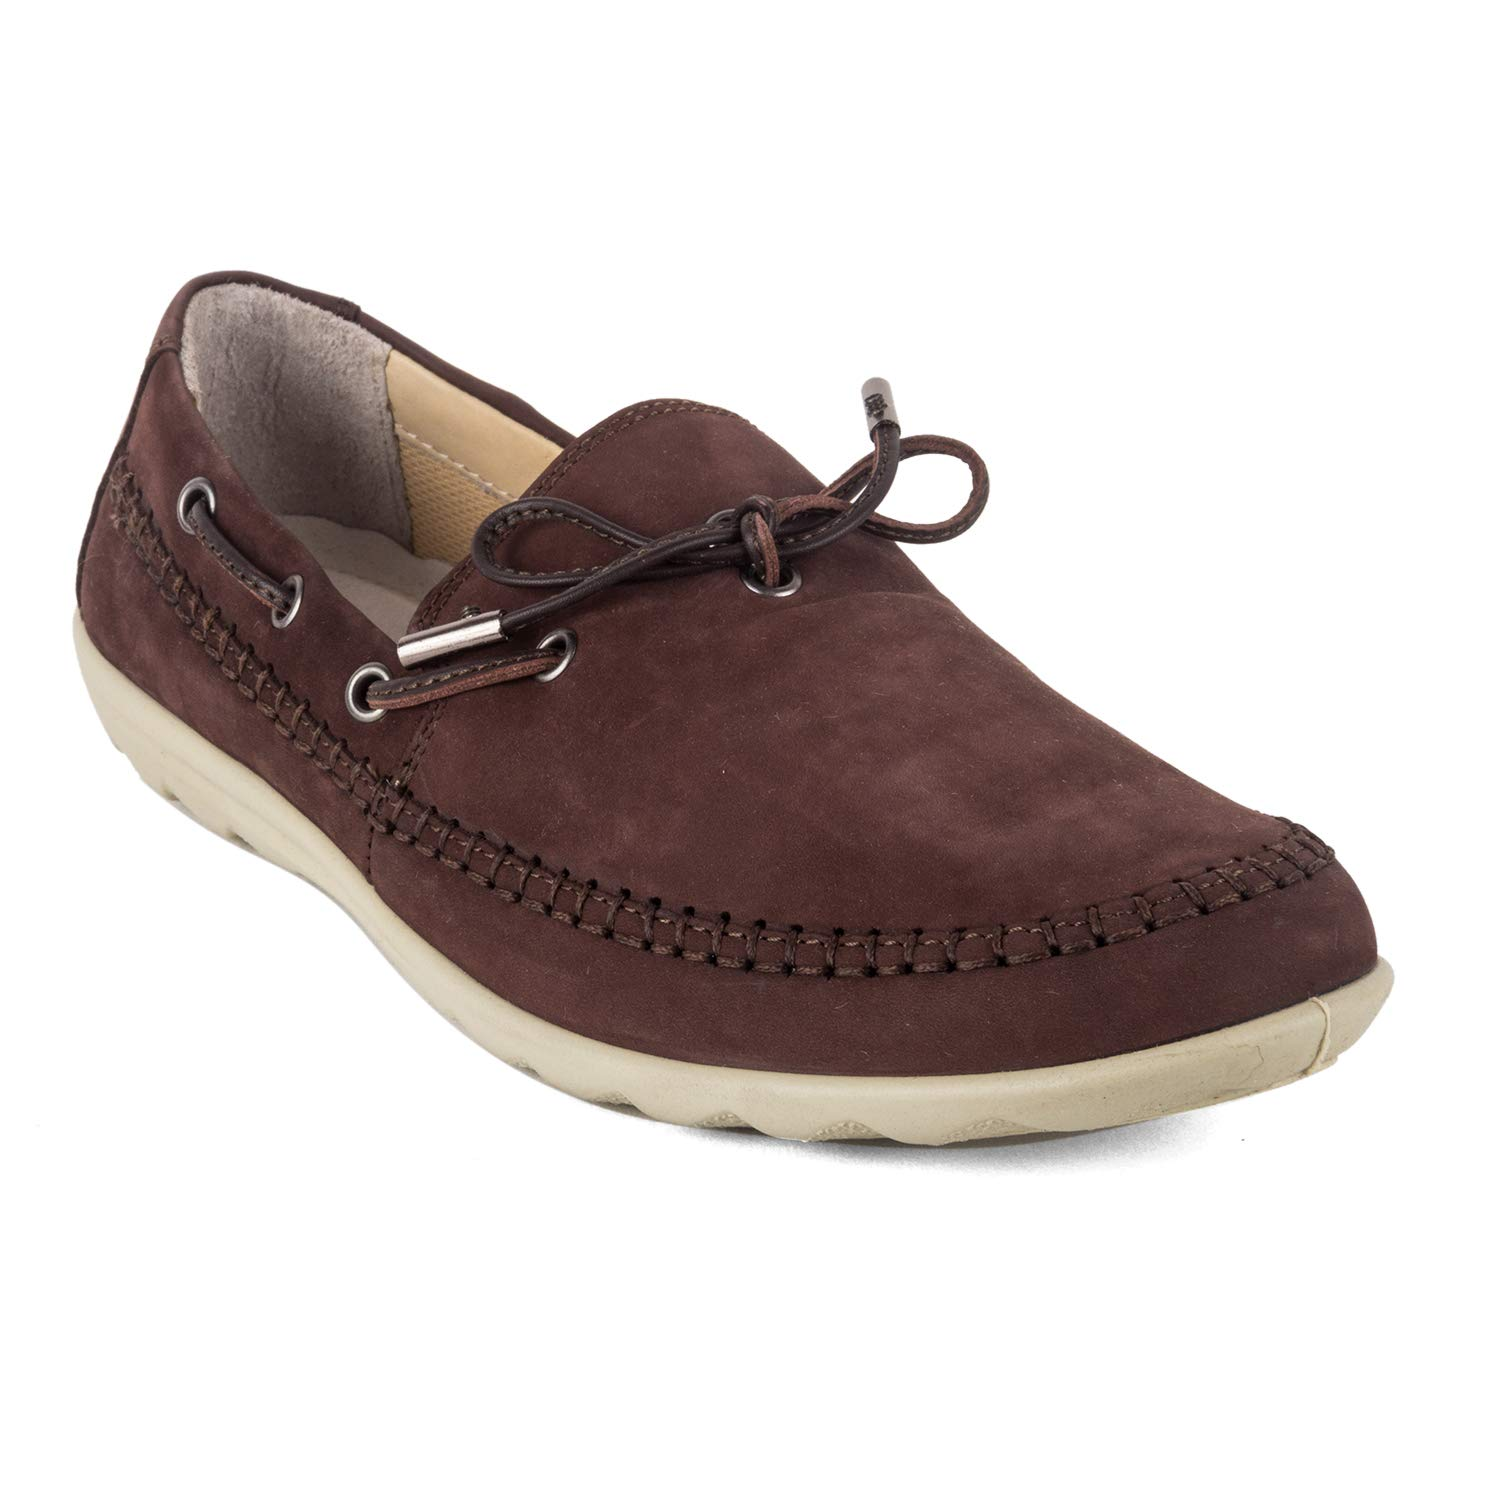 Buy Woodland Leather Loafers Shoes for